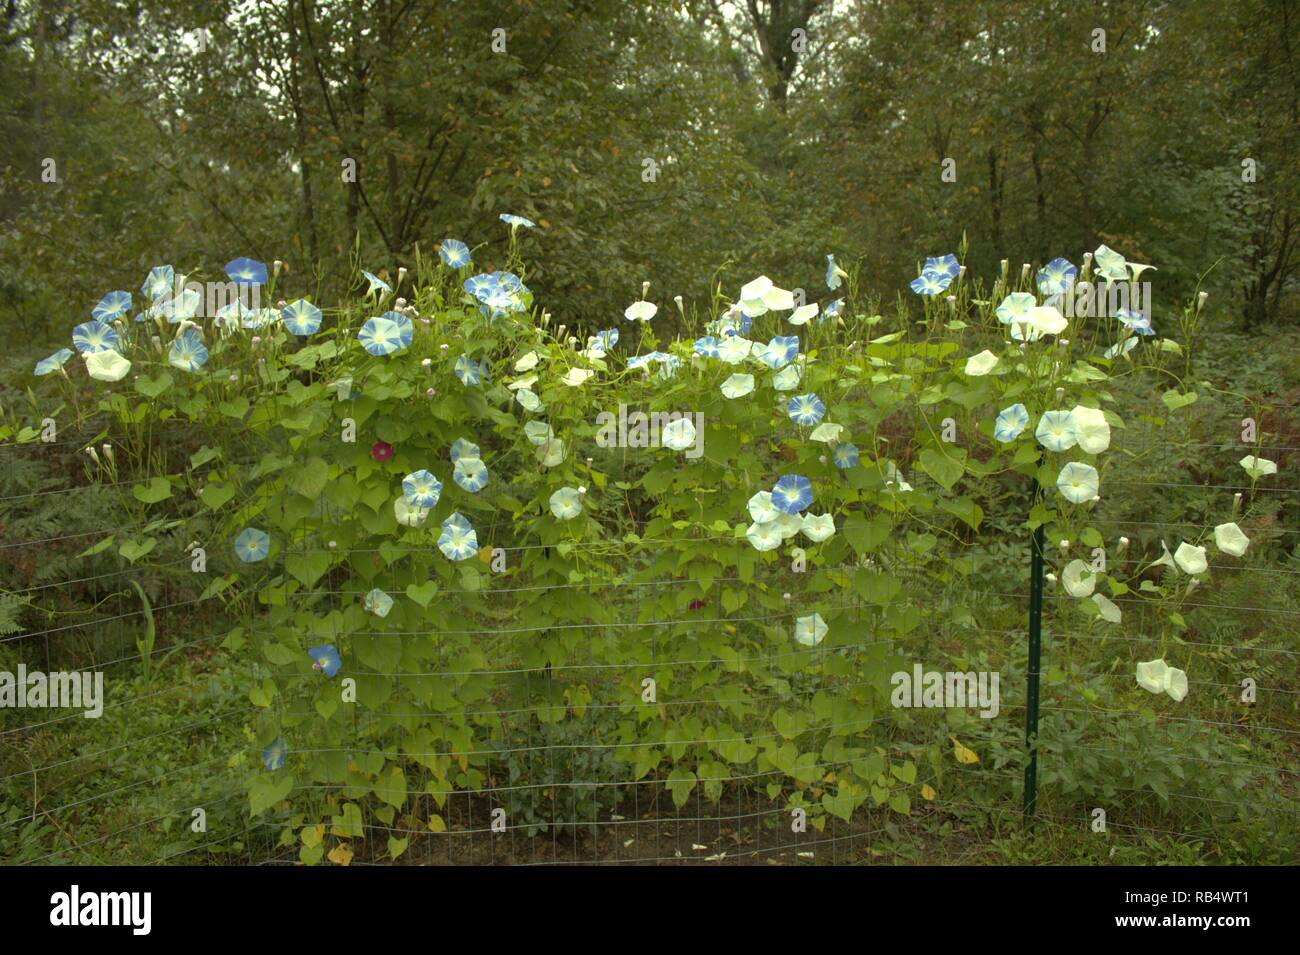 Bi Color Blue And White Morning Glories Climbing A Garden Fence In The Woods - Stock Image